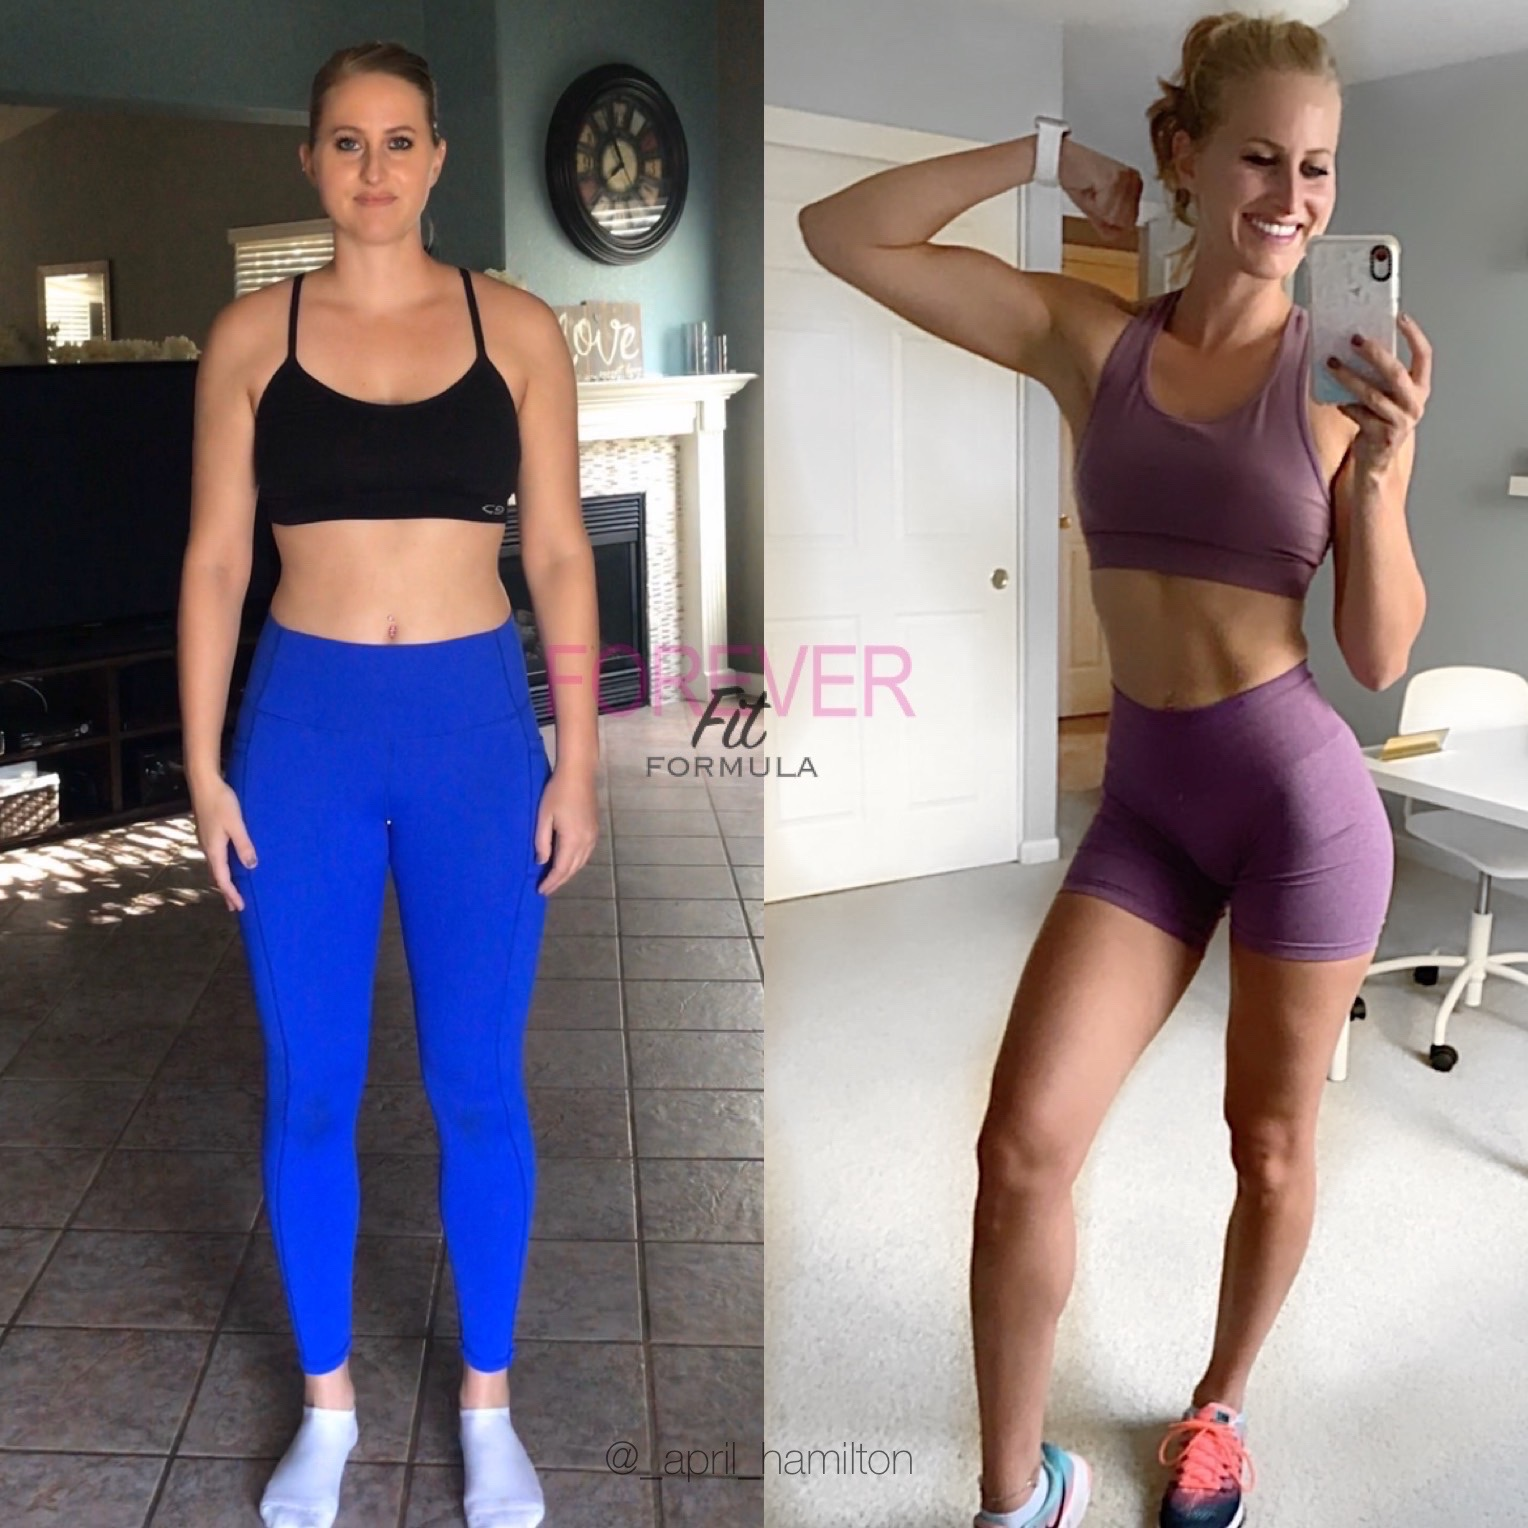 My fitness journey - forever fit formula